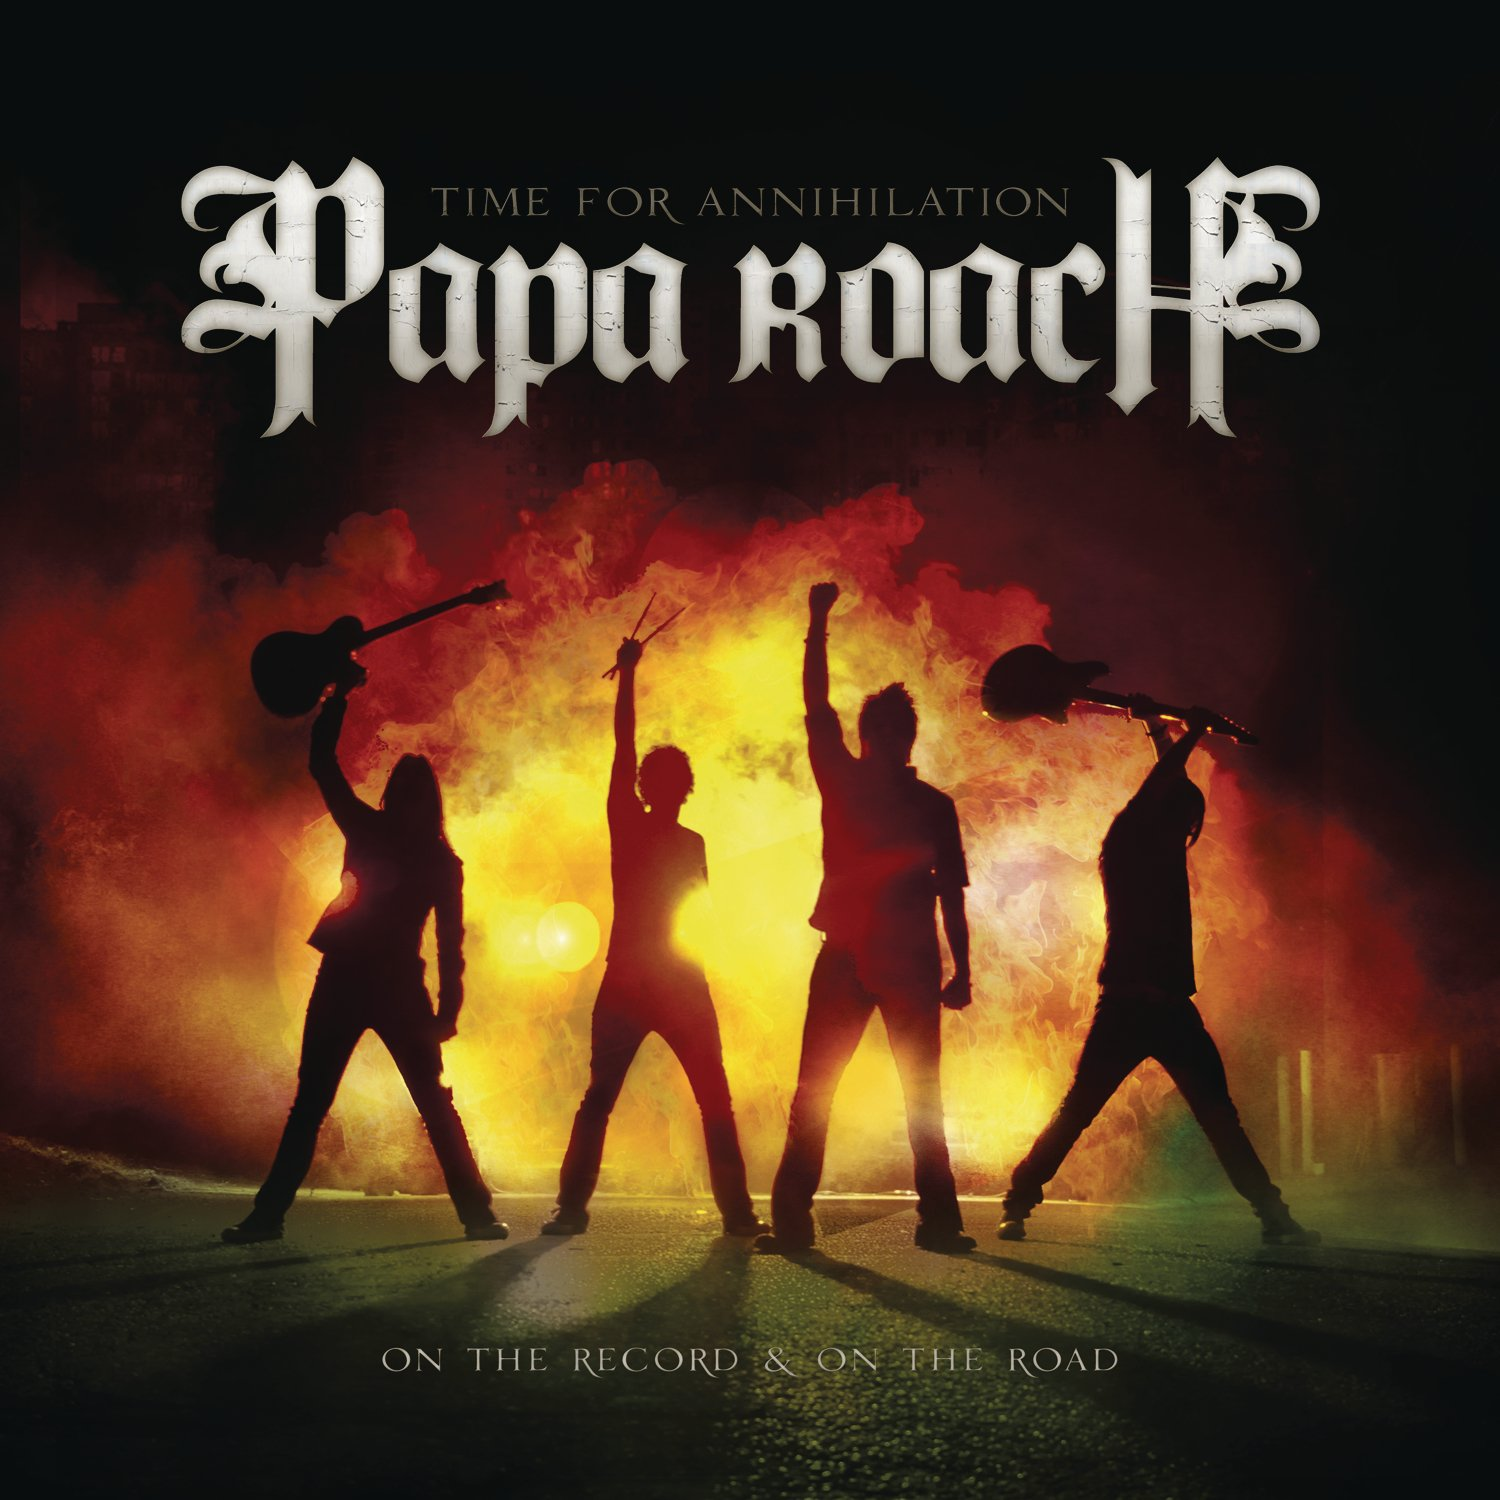 CD : Papa Roach - Time For Annihilation...On The Record and On The Road [Explicit Content] (CD)